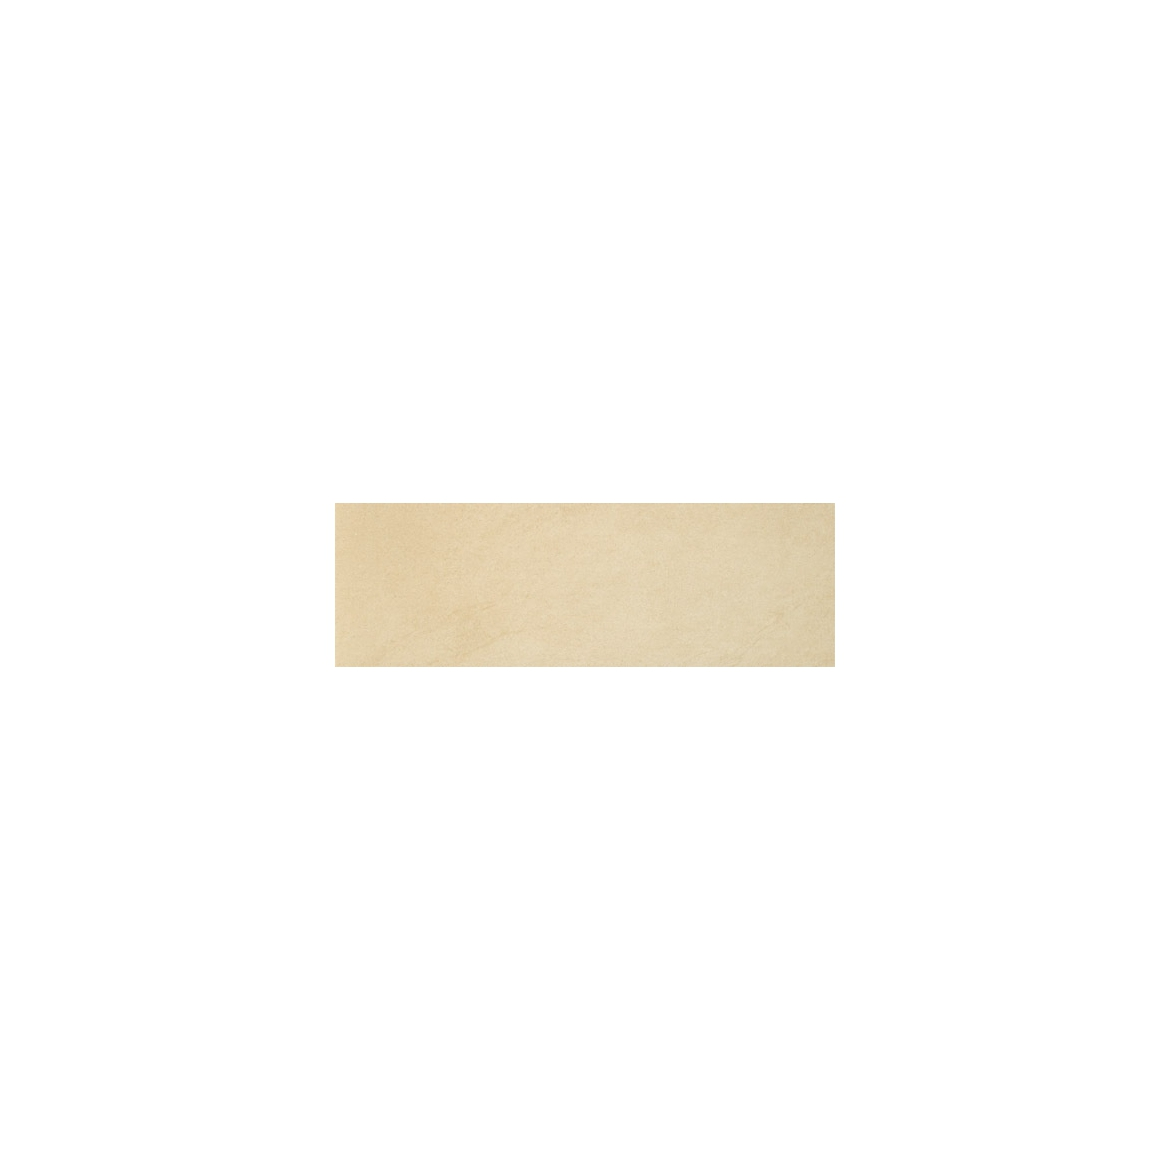 https://cerdesign.pl/535-large_default/p3775-gardenia-luminor-basalto-beige-325x977-85015.jpg